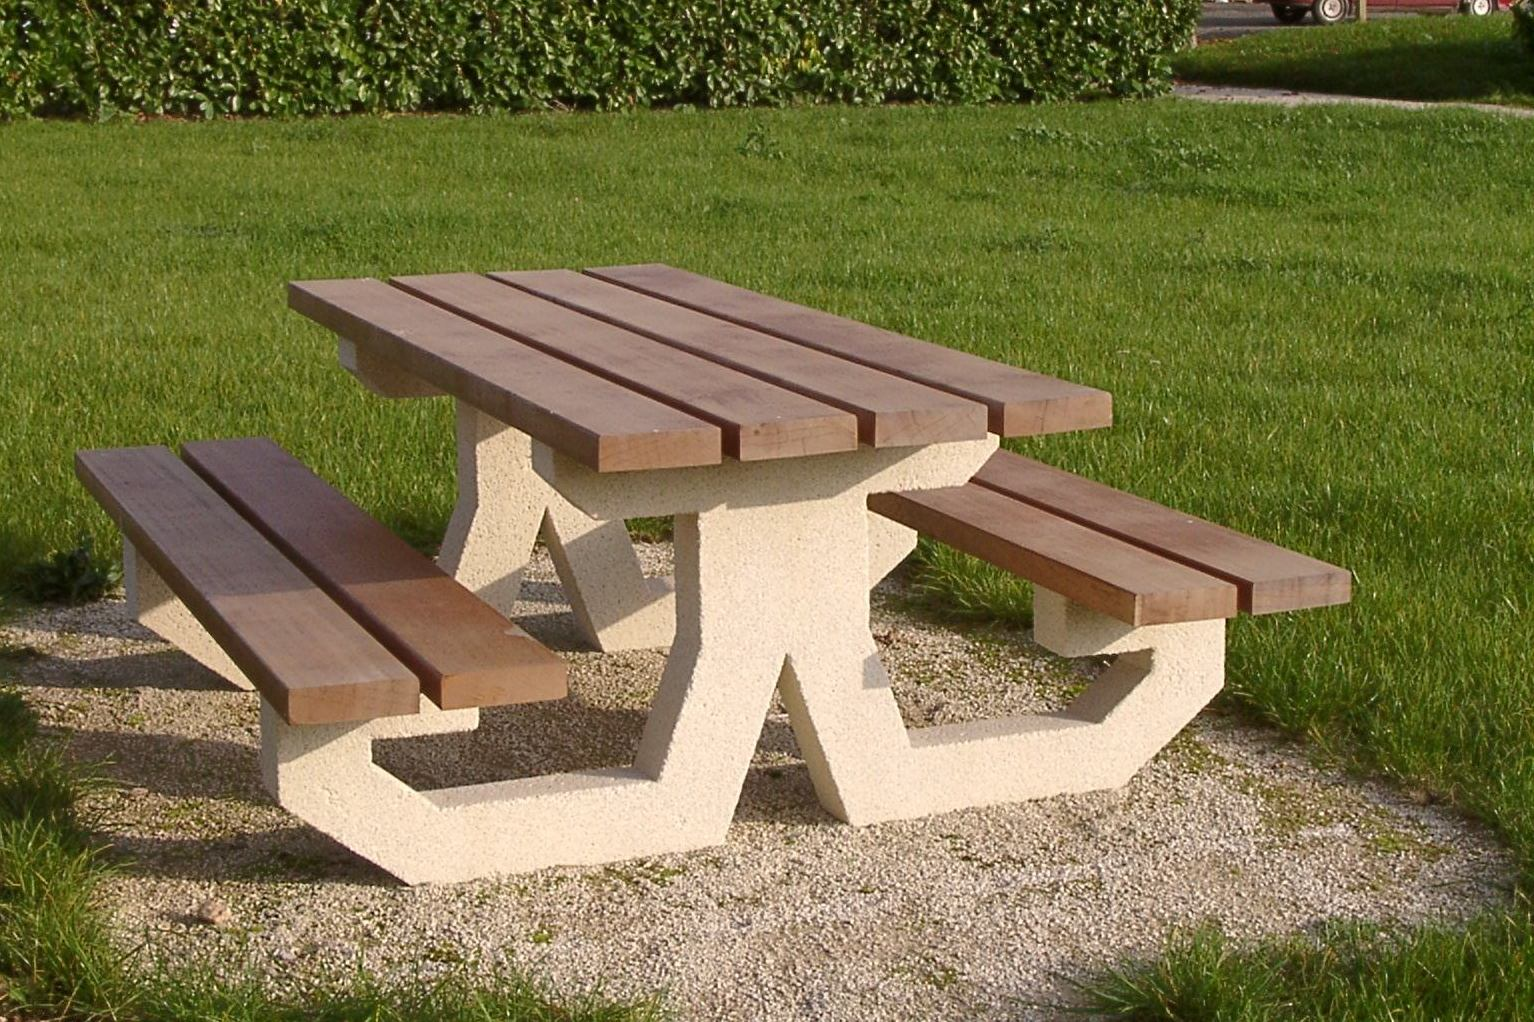 know more composite picnic table plans woodworking beginner. Black Bedroom Furniture Sets. Home Design Ideas